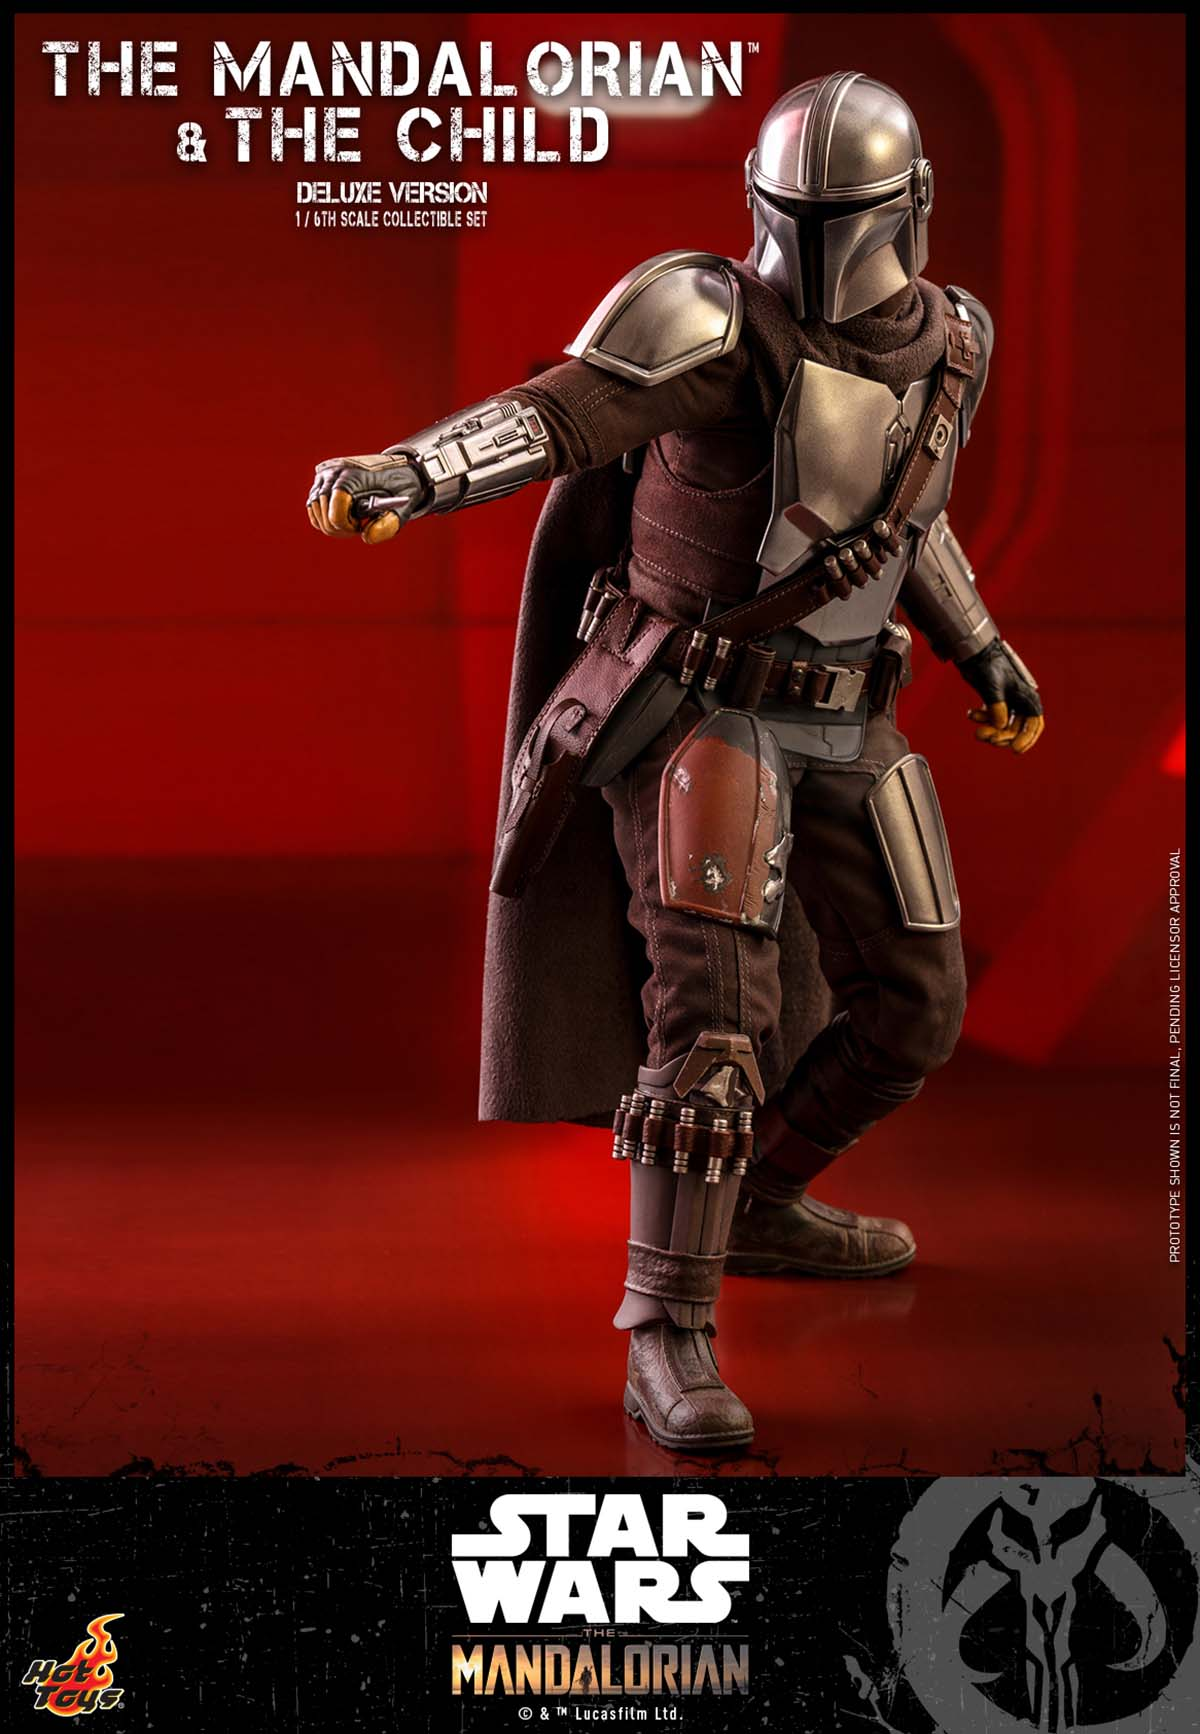 hot-toys-stm-mandalorian-and-child-collectible-set-deluxe_pr7